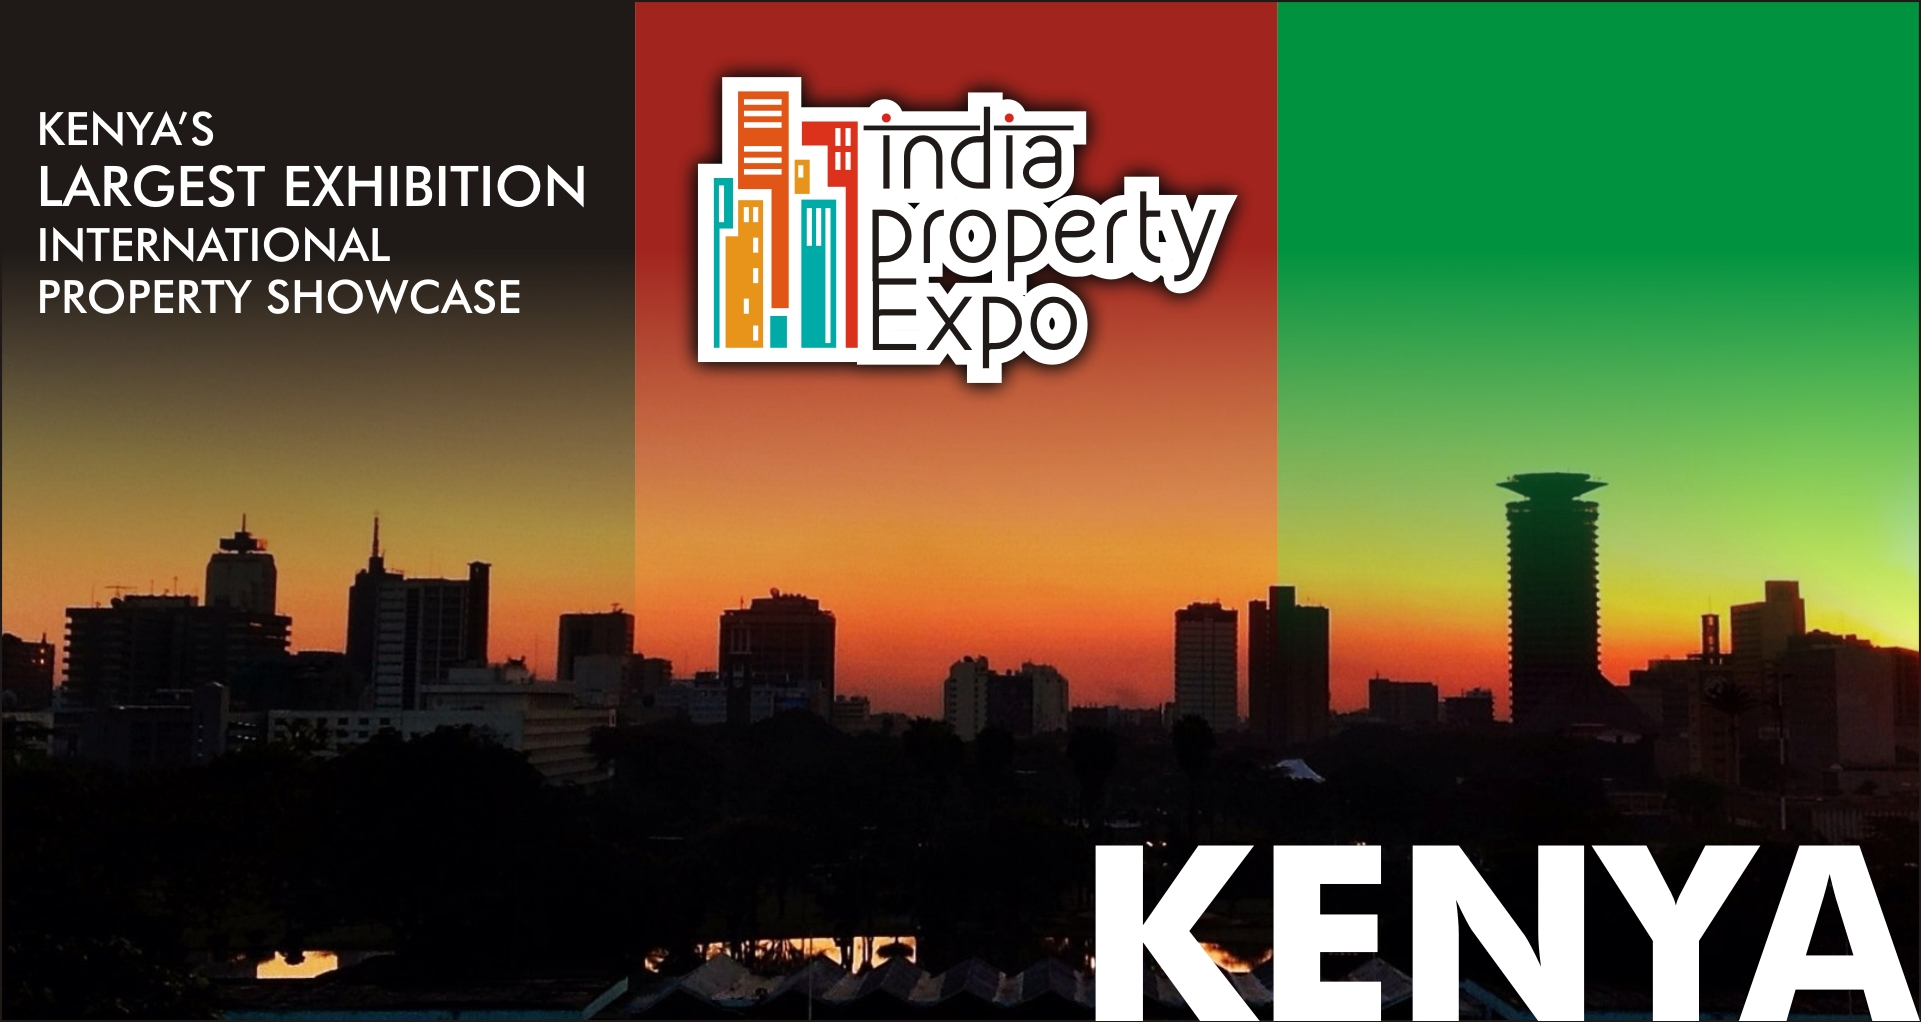 Exhibition Stall Organisers : India property expo largest indian real estate